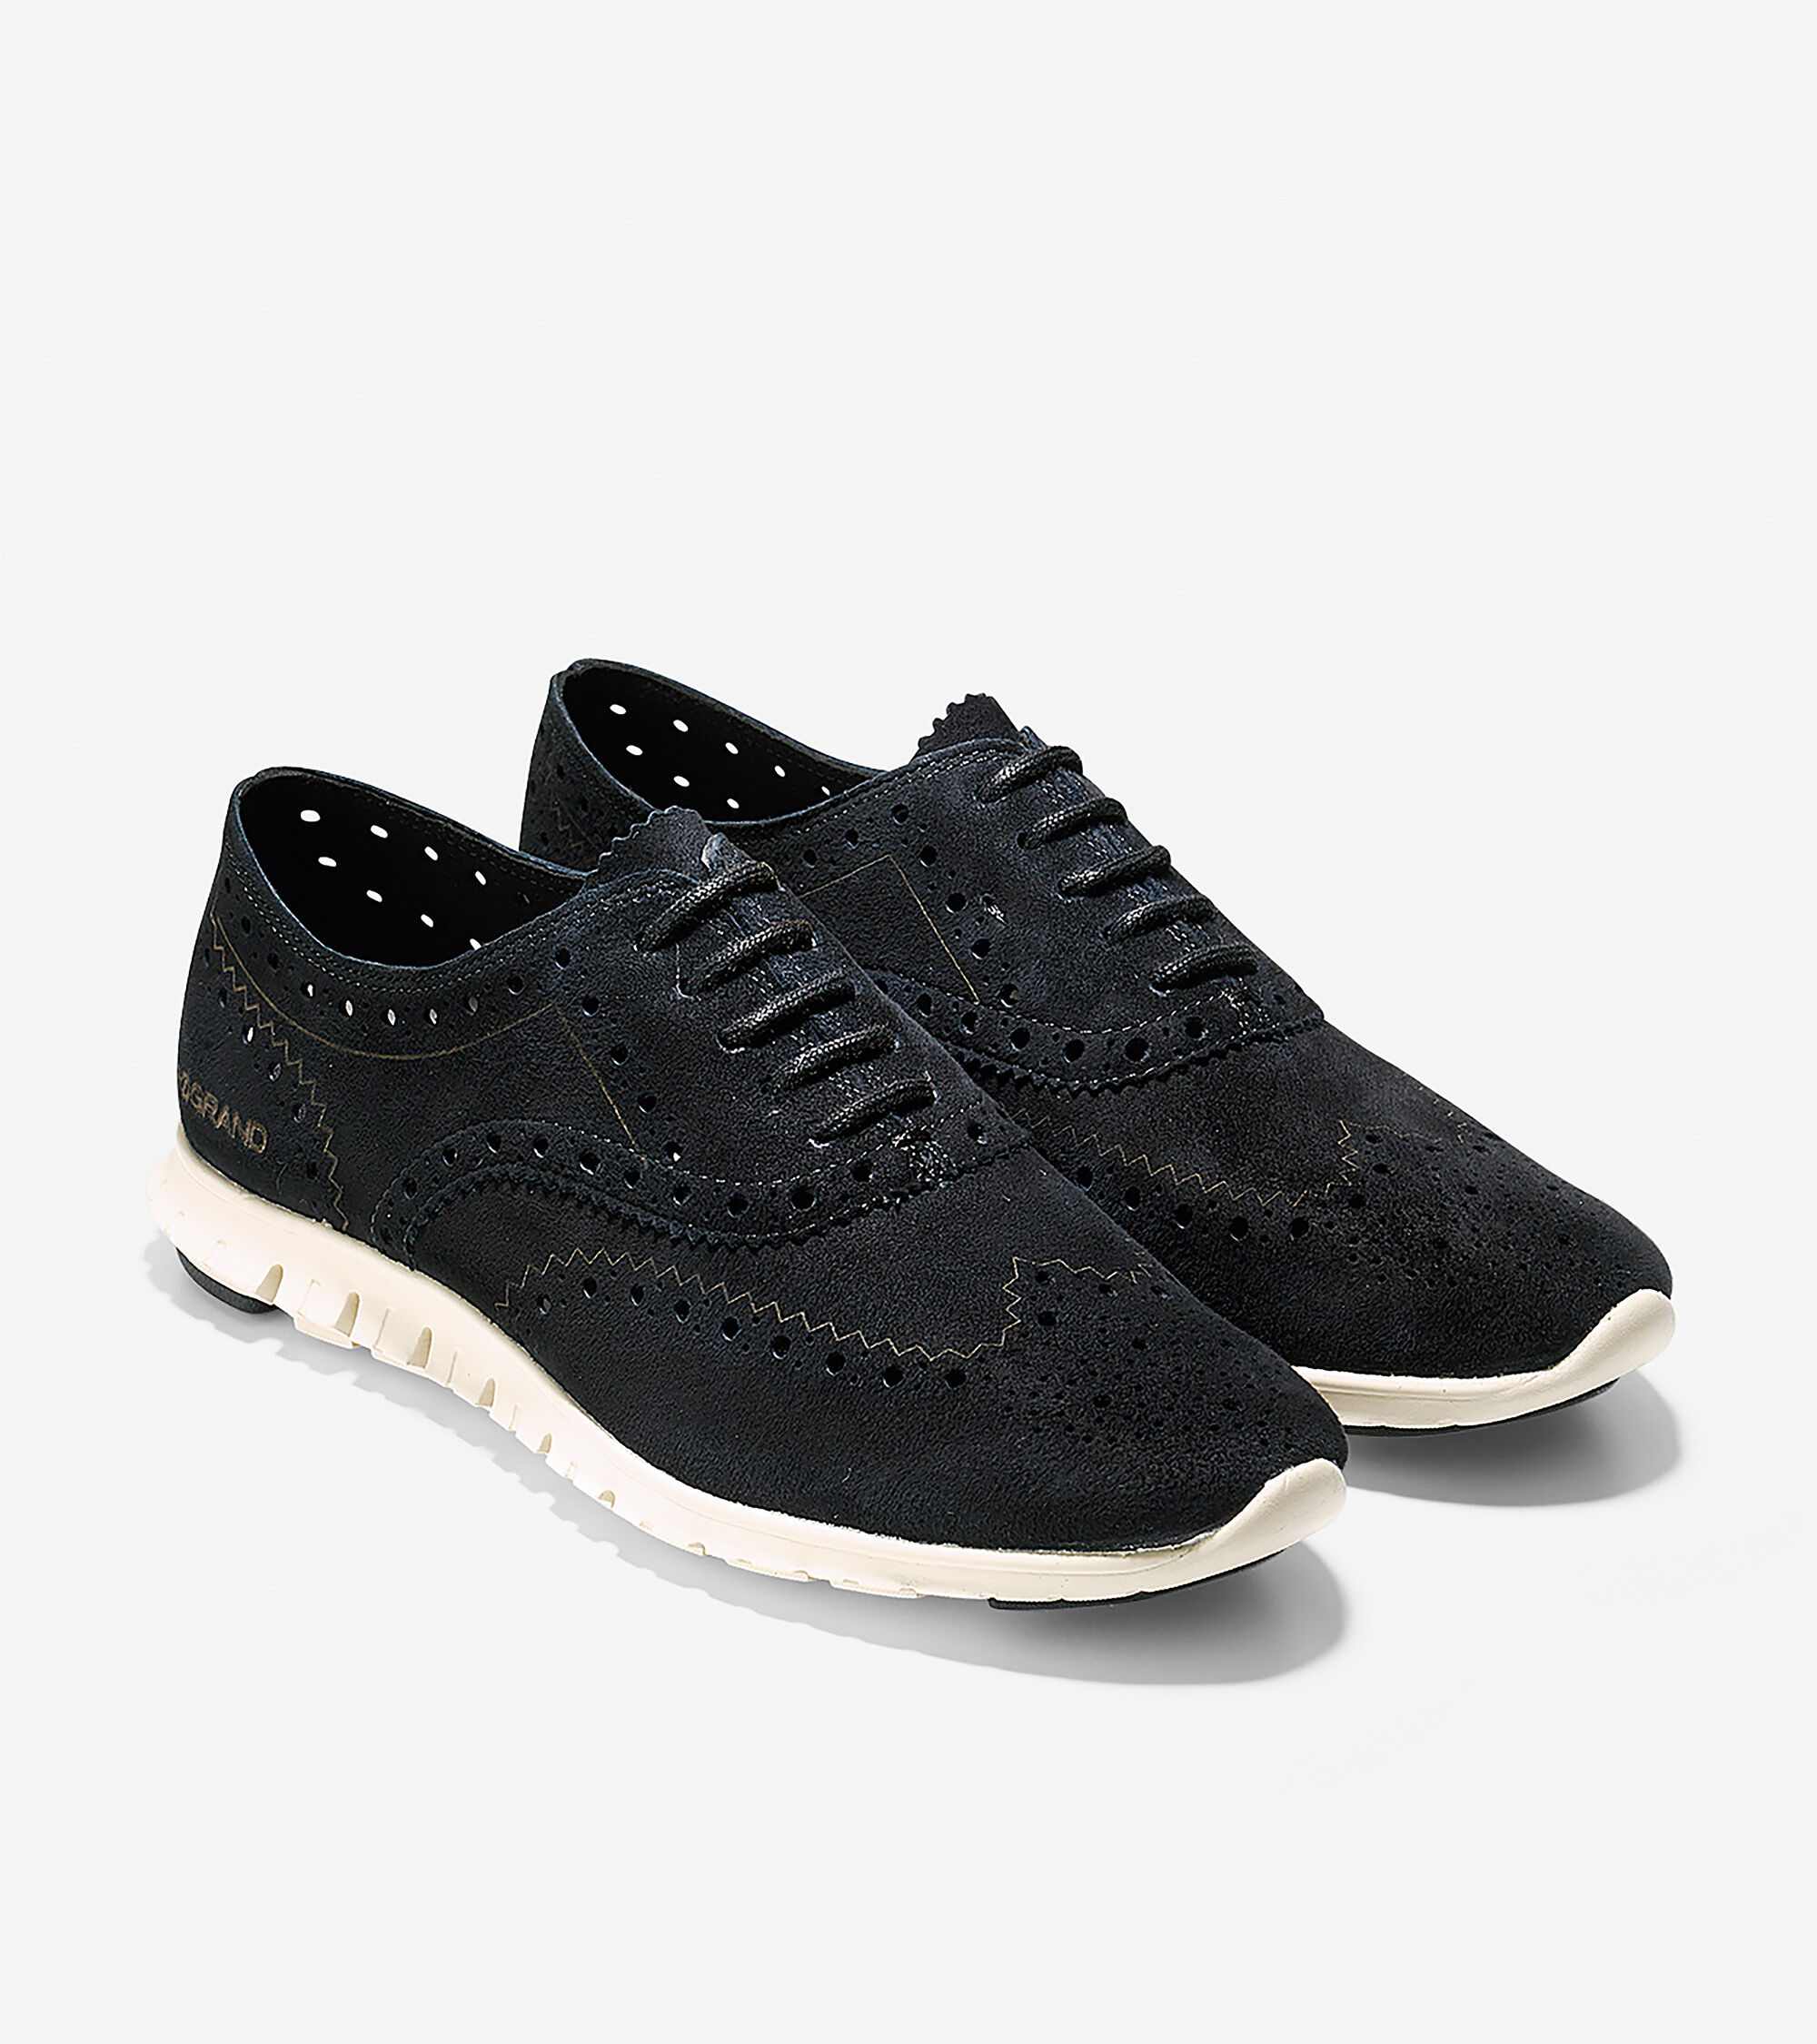 ... Women's ZERØGRAND Wingtip Oxford; Women's ZERØGRAND Wingtip Oxford;  Women's ZERØGRAND Wingtip Oxford. #colehaan